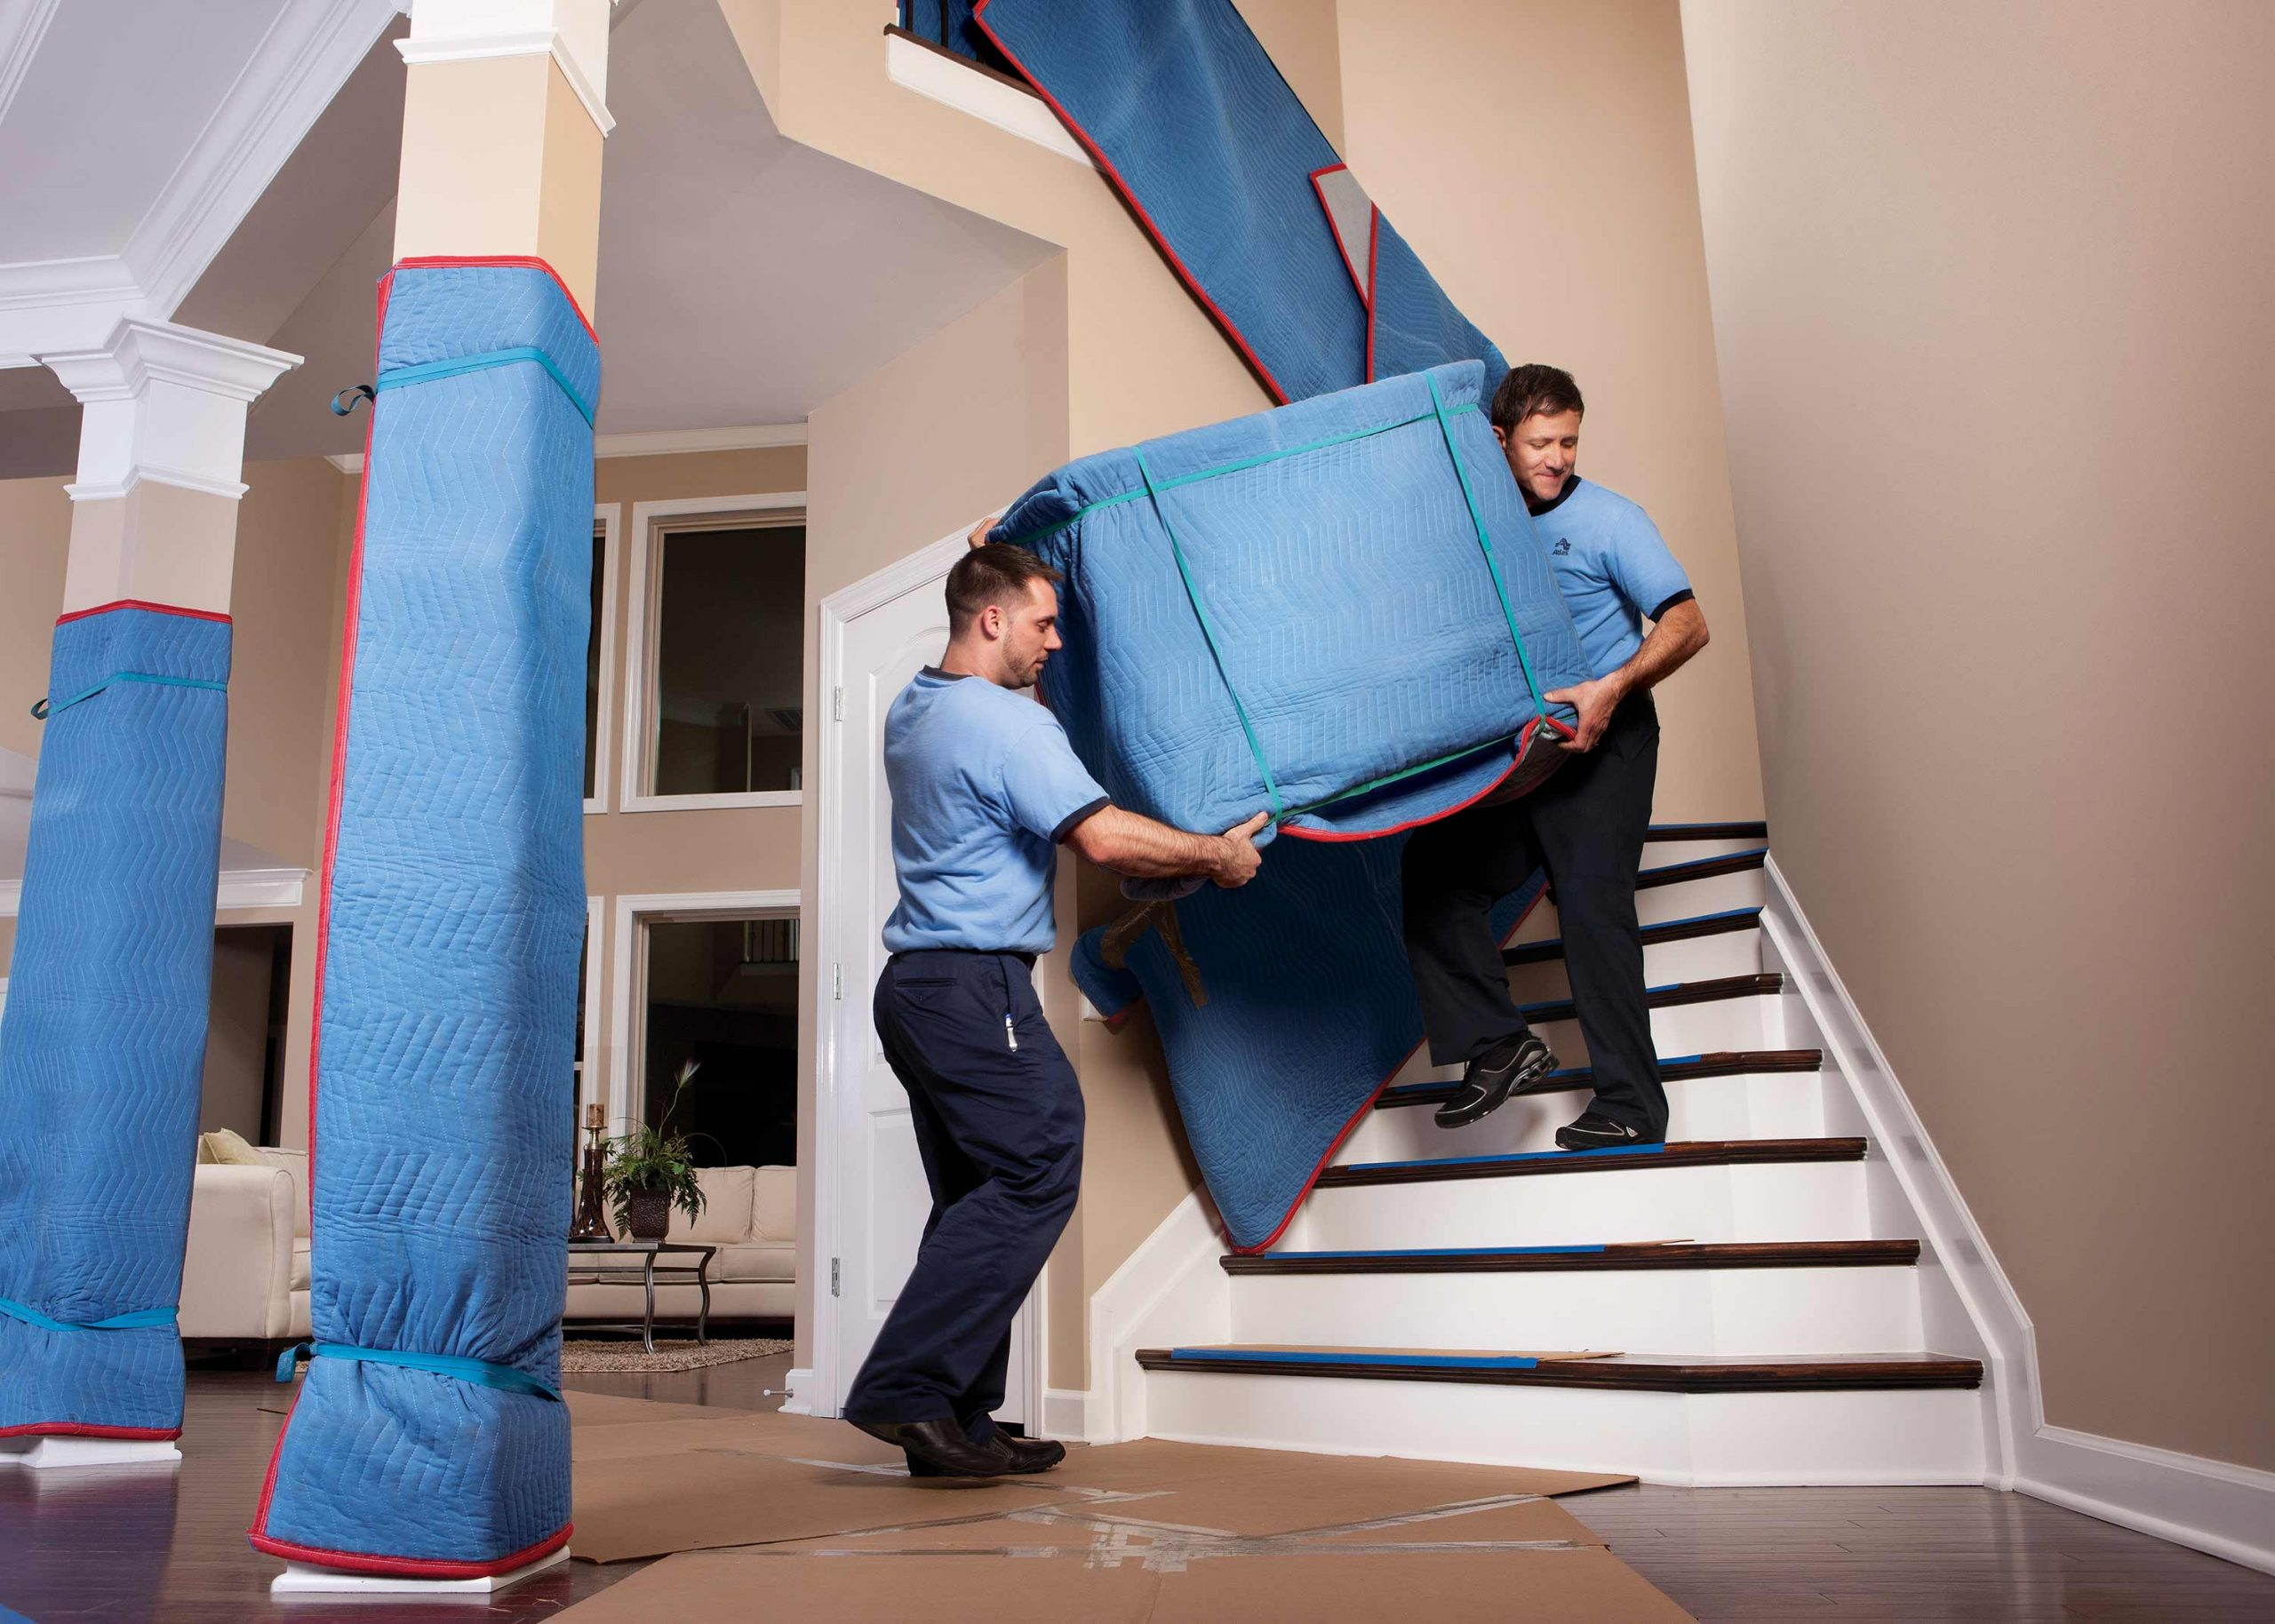 What Are The 3 Benefits Of Hiring A Trusted And Professional Moving Service?